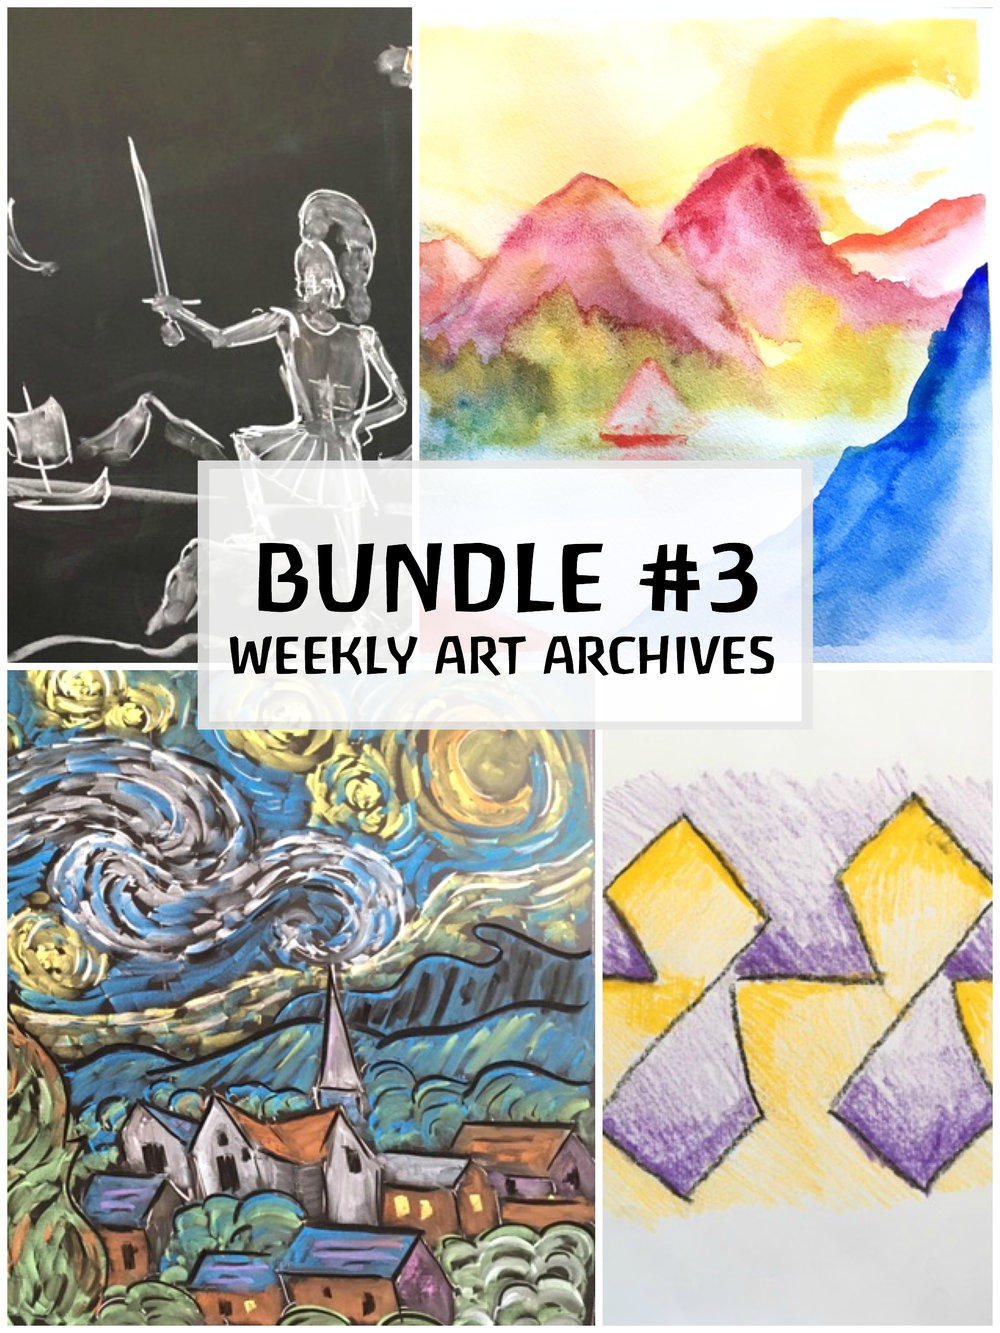 $28   Lesson One - Watercolor landscape.  Lesson Two- Figure drawing.  Lesson Three- Van Gogh inspired chalk-drawing.  Lesson Four- Form-drawing exercises.